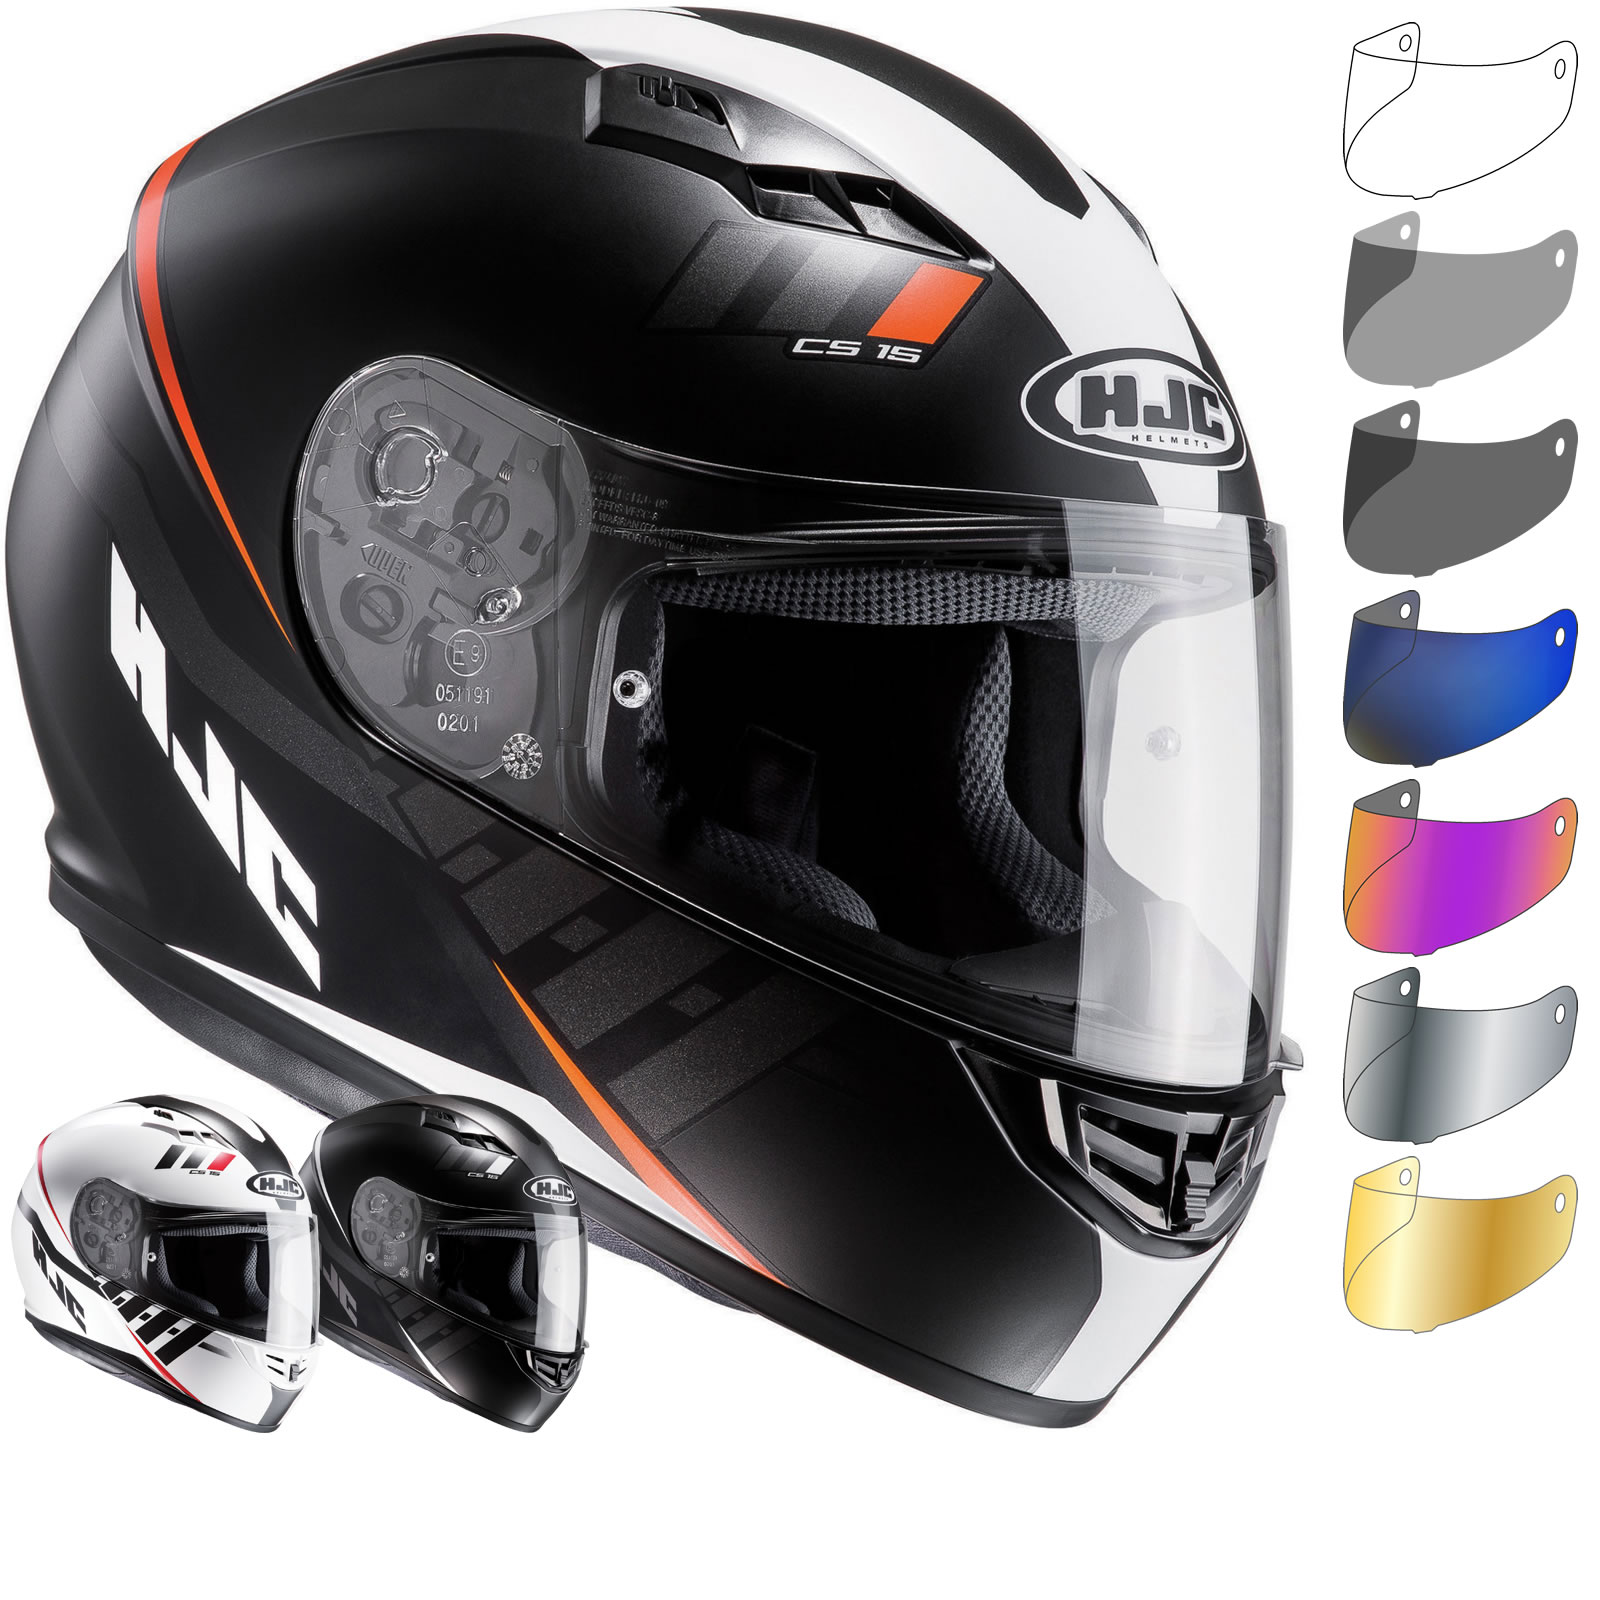 HJC CS 15 Space Motorcycle Helmet & Visor Full Face Helmets